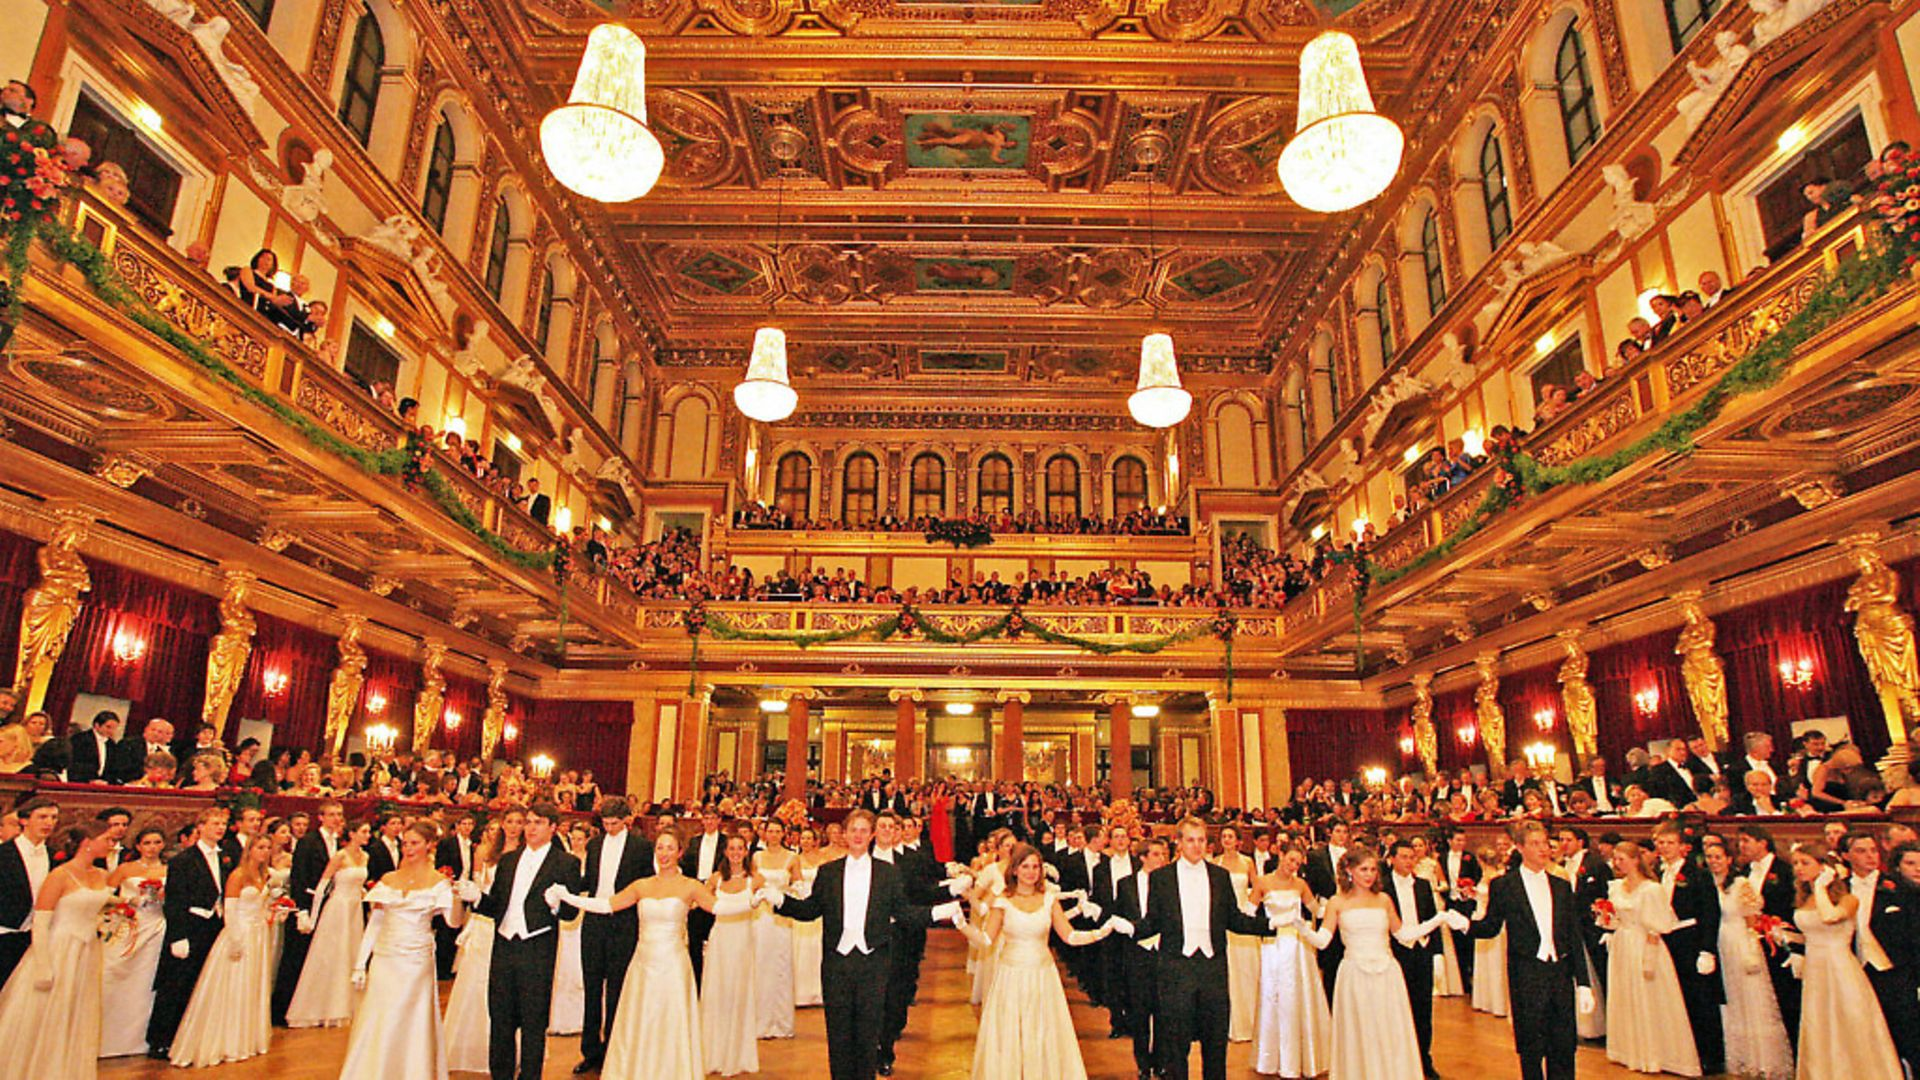 """Young couples wait to dance in the """"Golden Auditorium"""" of the Musikverein on January 22, 2009 during the opening of the Philharmonic Ball, one of the cities fanciest balls of the season, performed by the Vienna Philharmonic Orchestra, in Vienna.     AFP PHOTO/ DIETER NAGL (Photo credit should read DIETER NAGL/AFP via Getty Images) - Credit: AFP via Getty Images"""